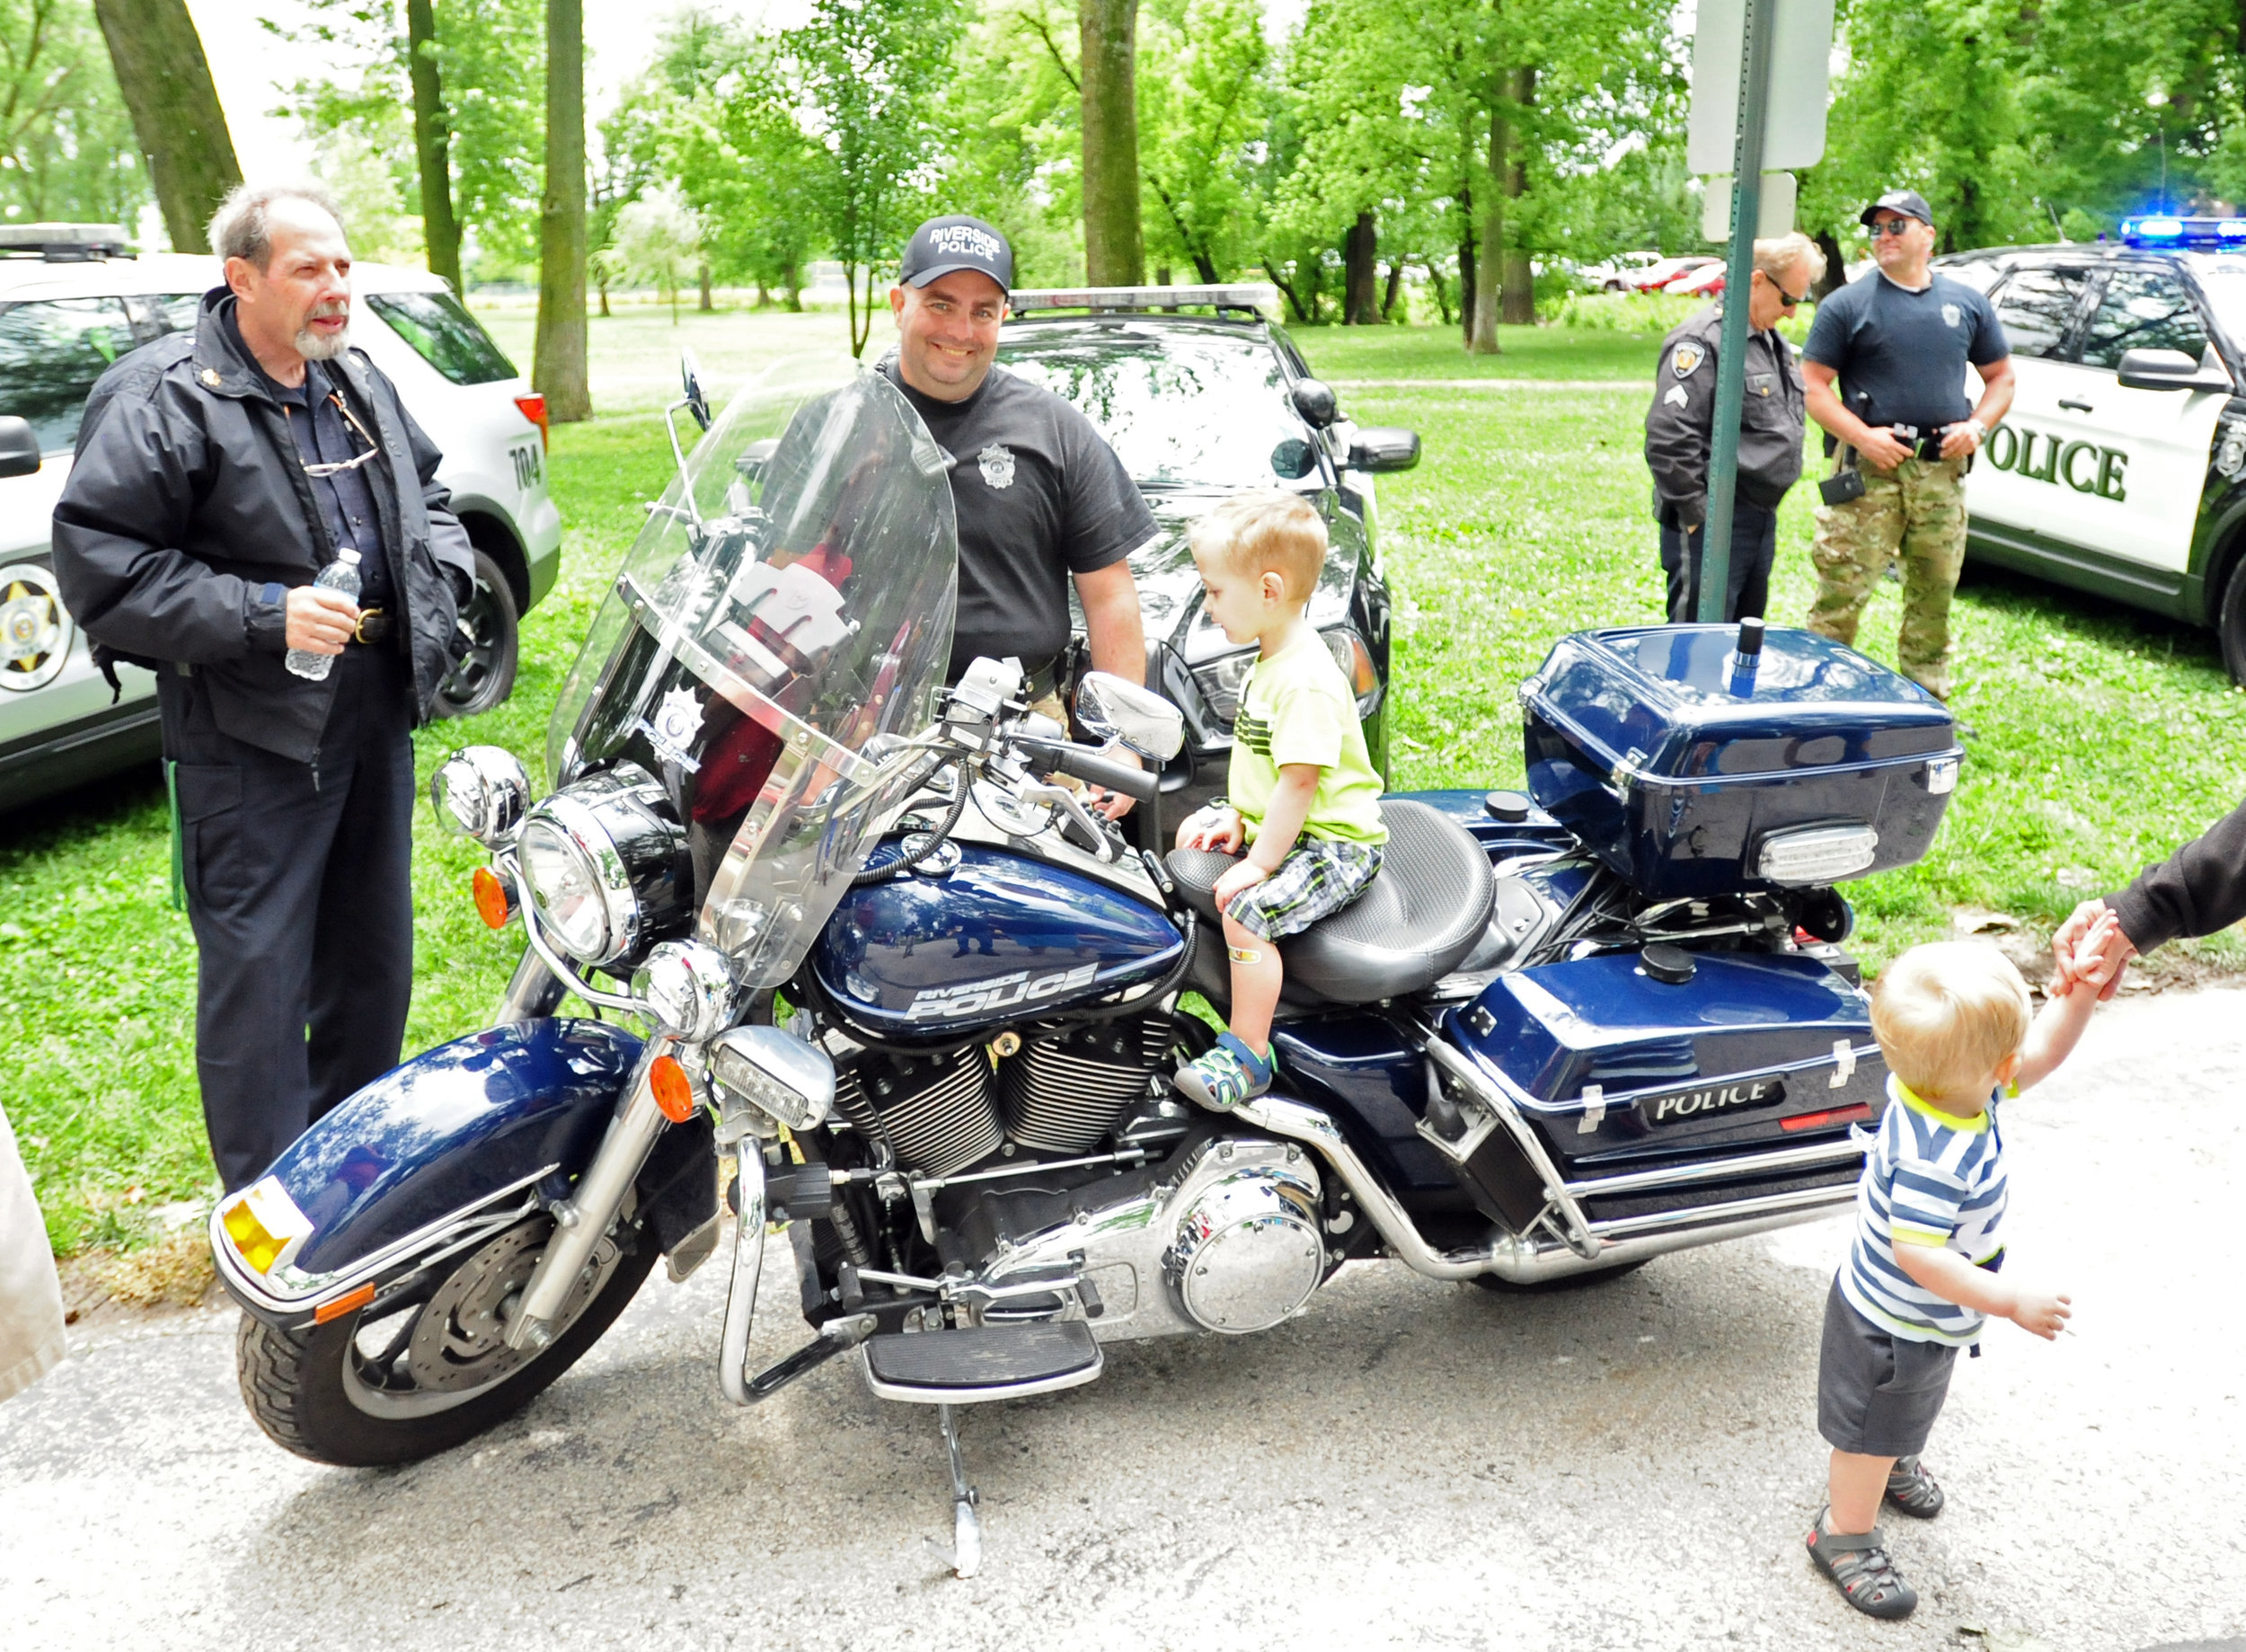 NICK INGRAM/Citizen photo Officer Josh Collins (center) of the Riverside (Mo.) Police Department stands by Blake Baldwin, 3, from Kansas City, Mo. as he sits on one of the department's motorcycles at the Northland Law Enforcement Appreciation Day on Saturday, May 20 at English Landing Park in Parkville, Mo.